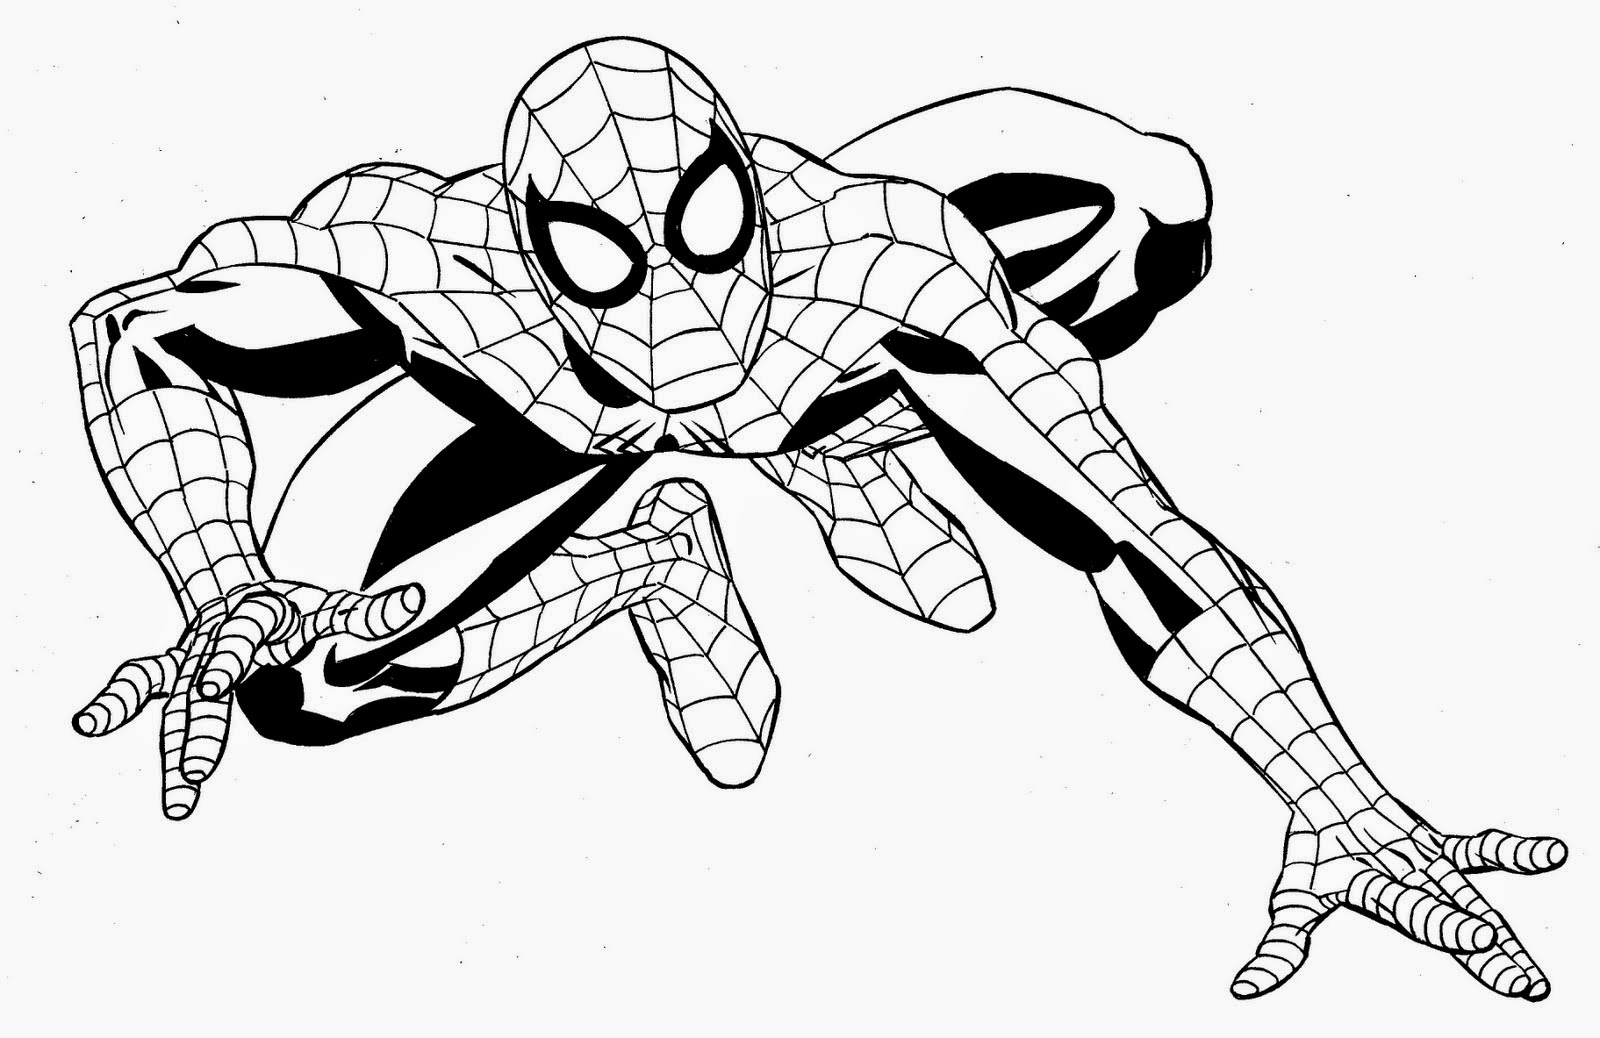 coloring pages marvel marvel heroes coloring pages at getdrawings free download marvel pages coloring